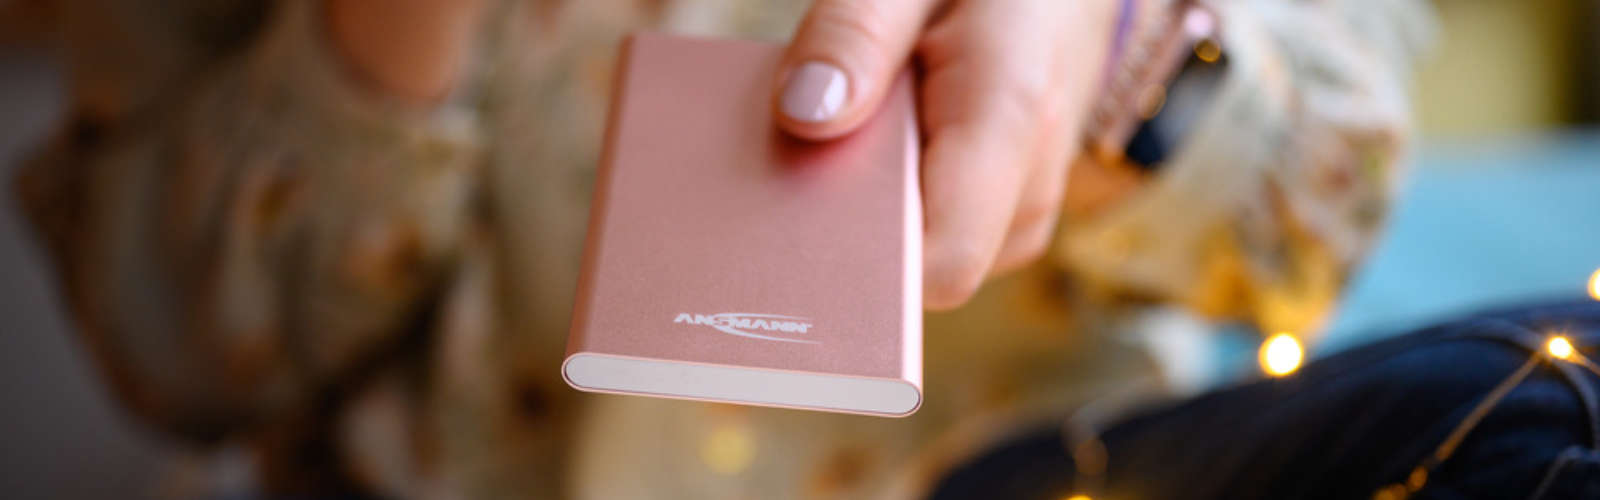 Powerbank 4 Ah, pink coloured